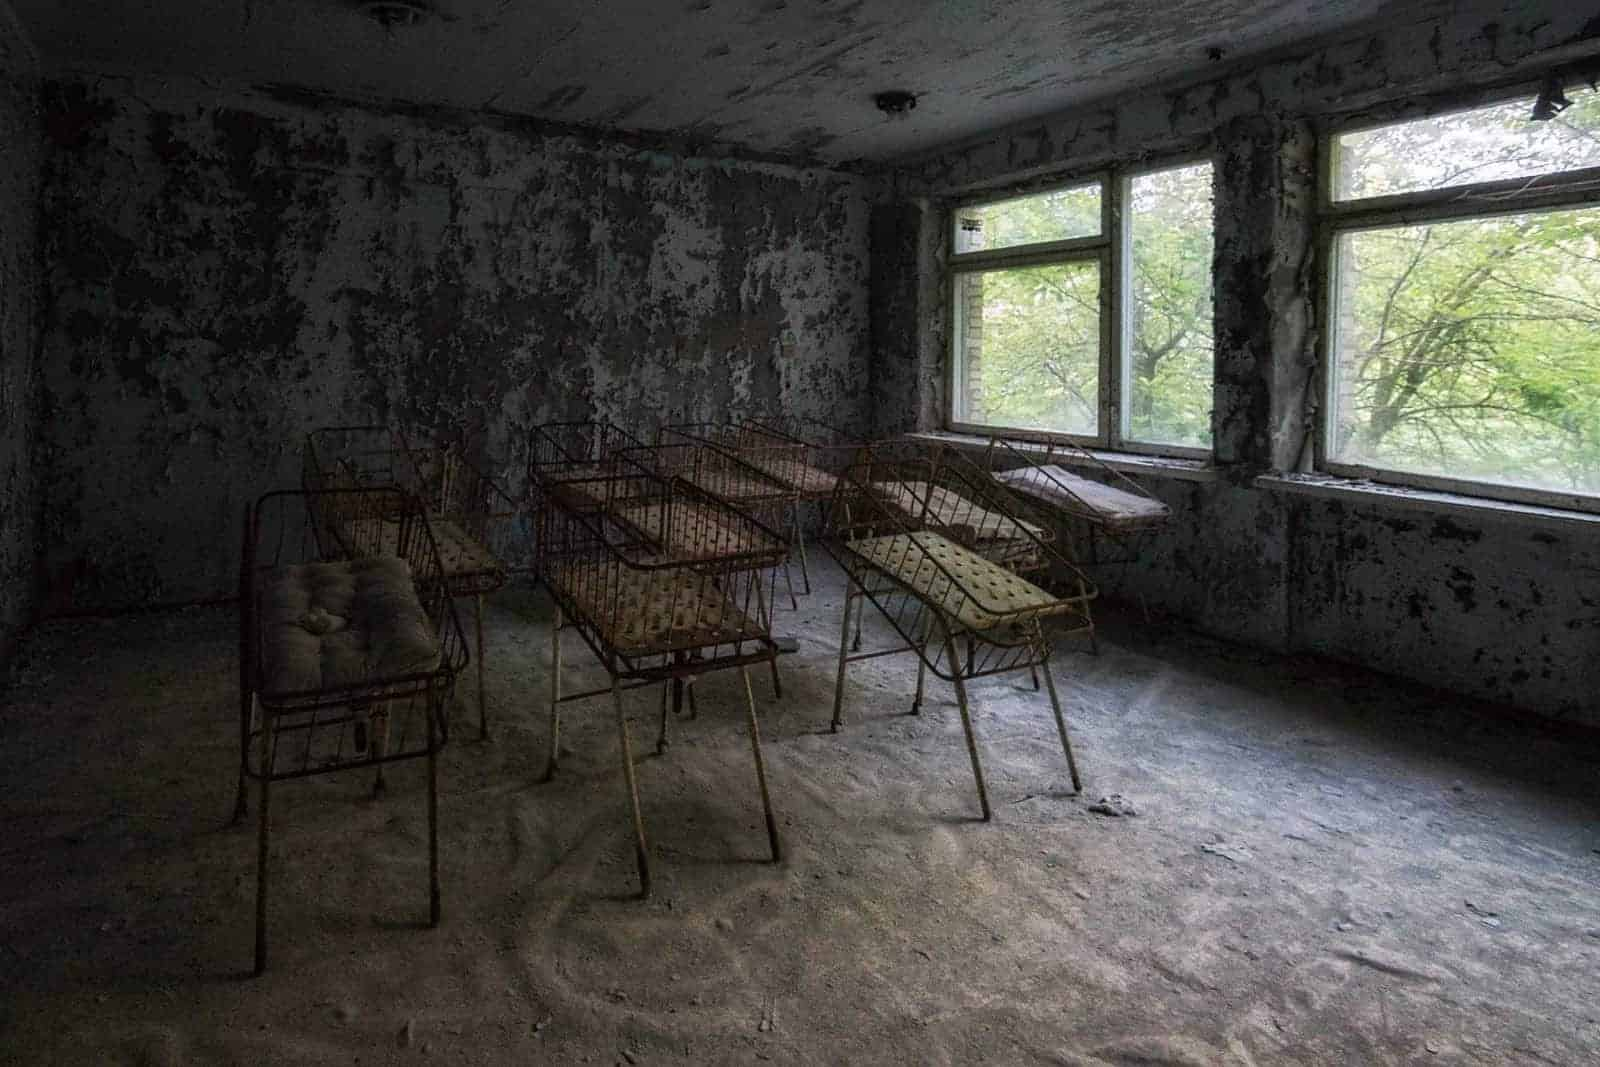 Chernobyl Pripyat Hospital No 126 Featured Image